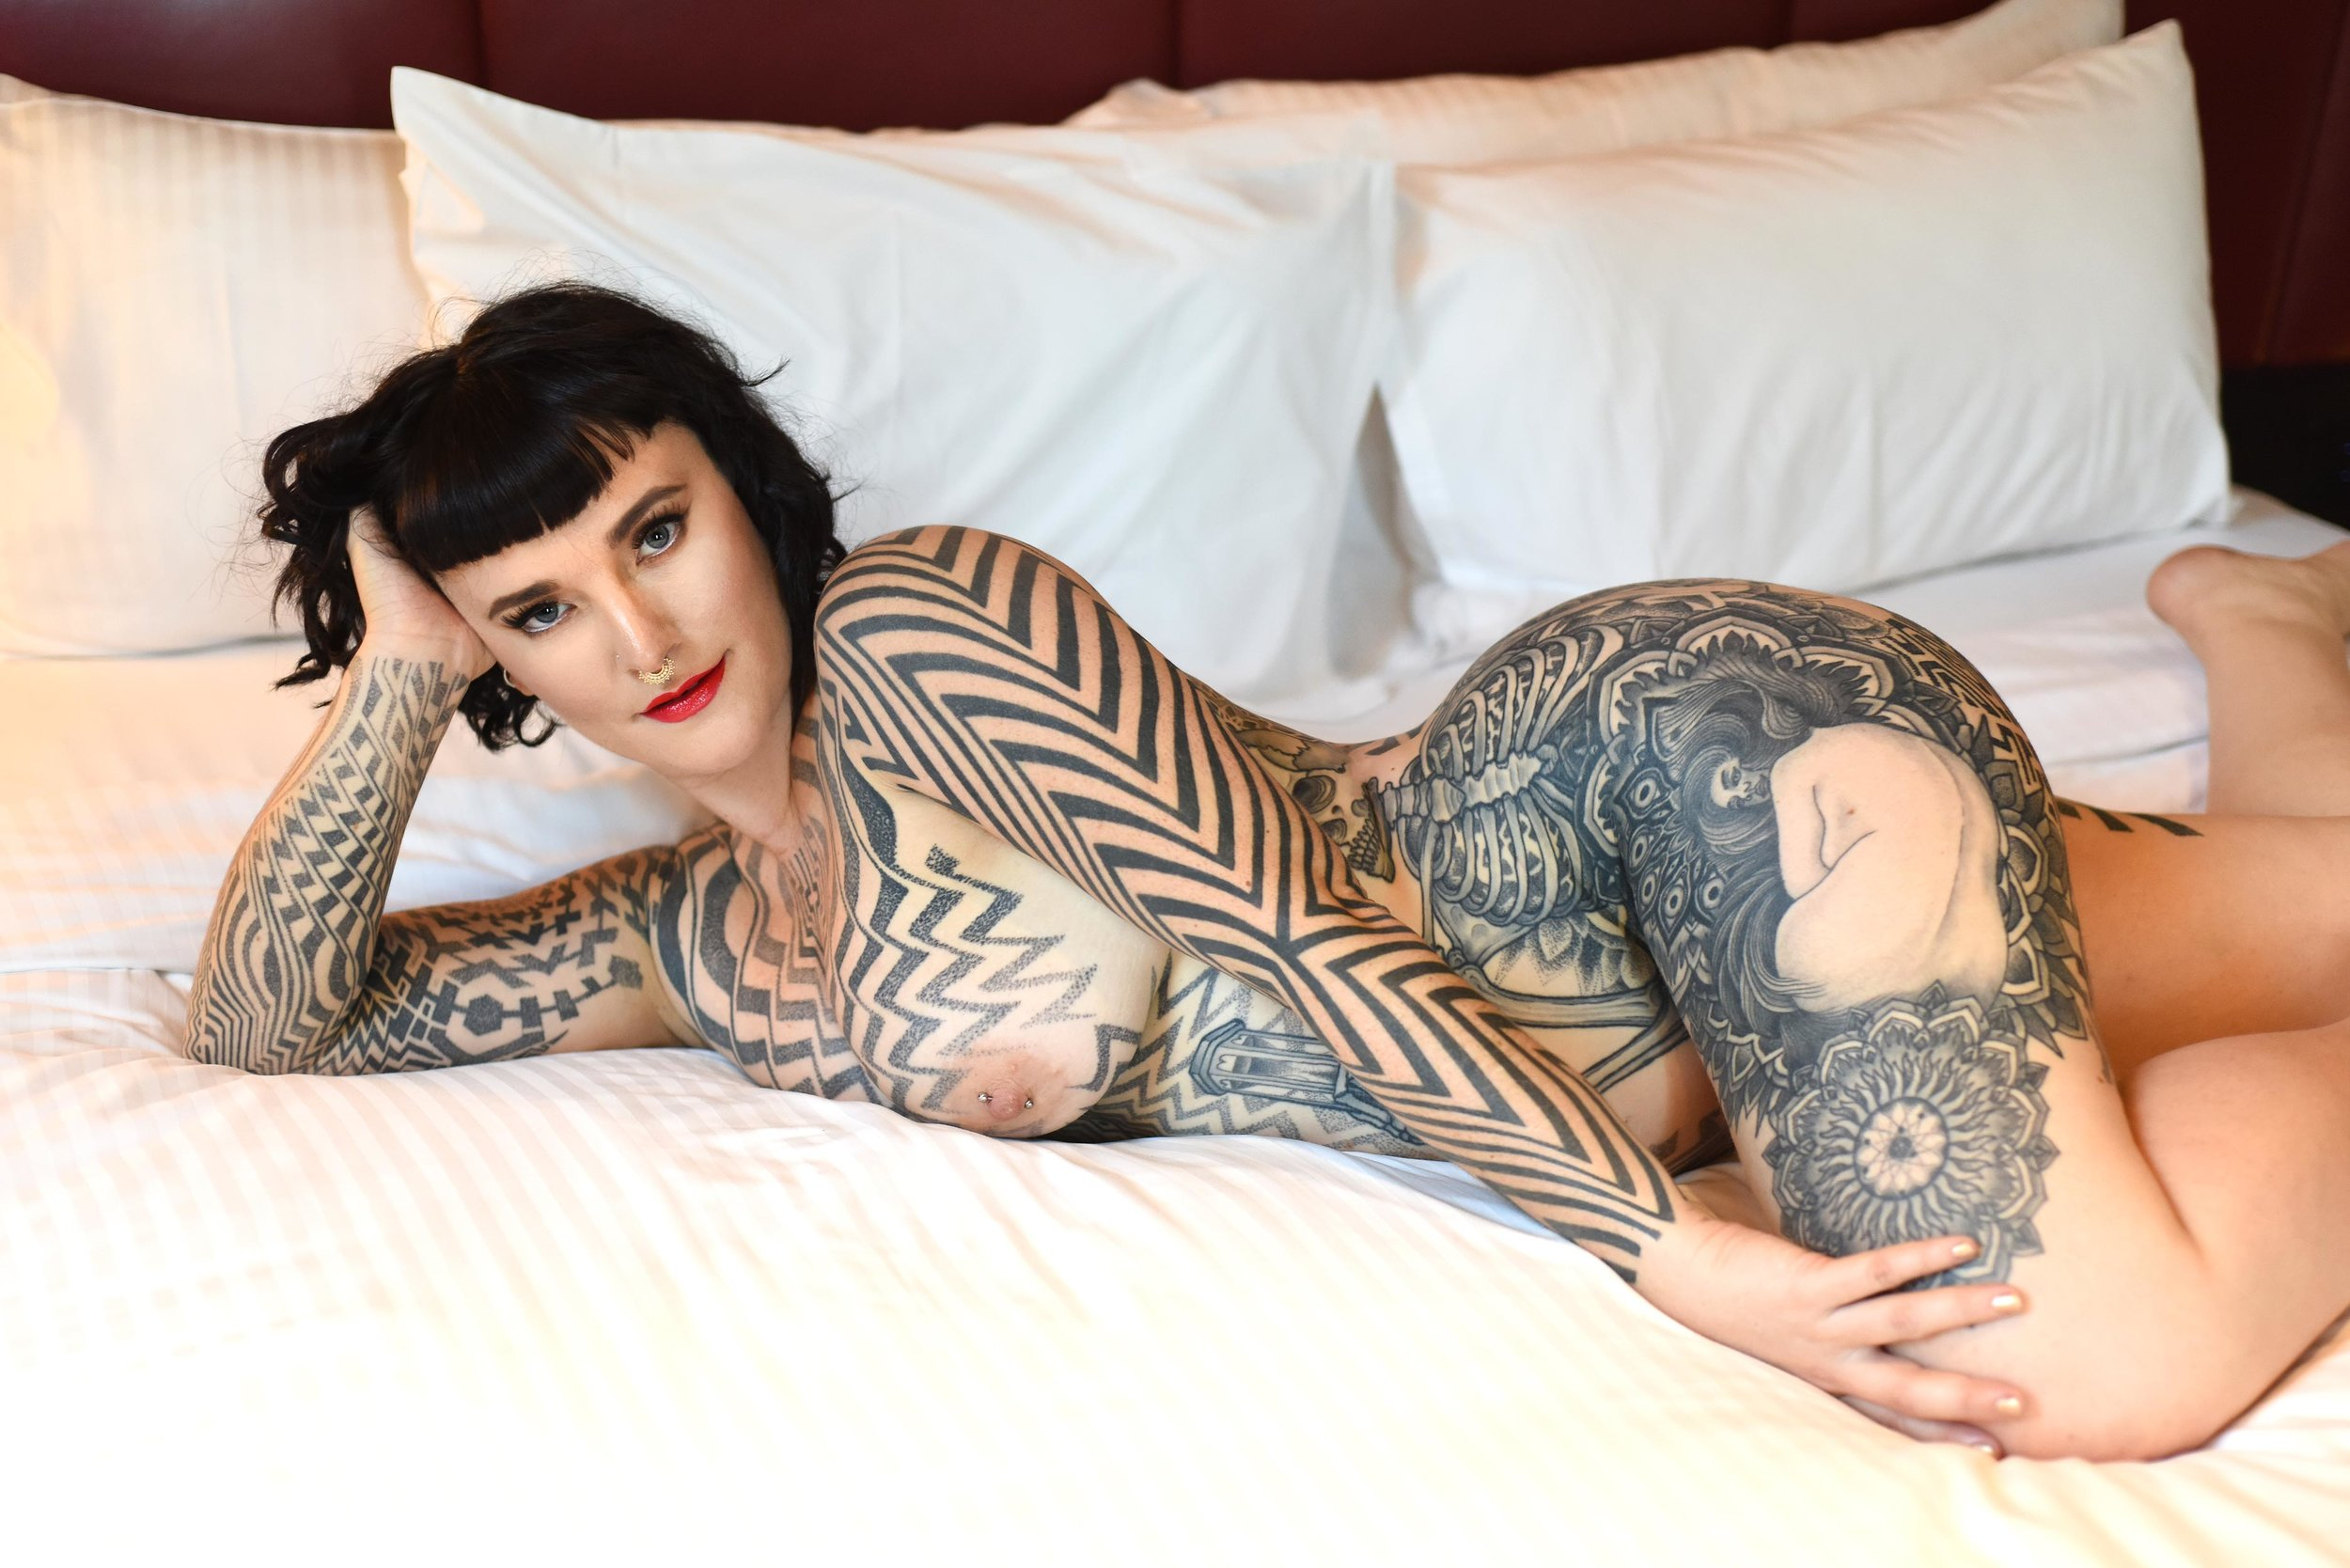 Tallula Darling tattooed fetish escort